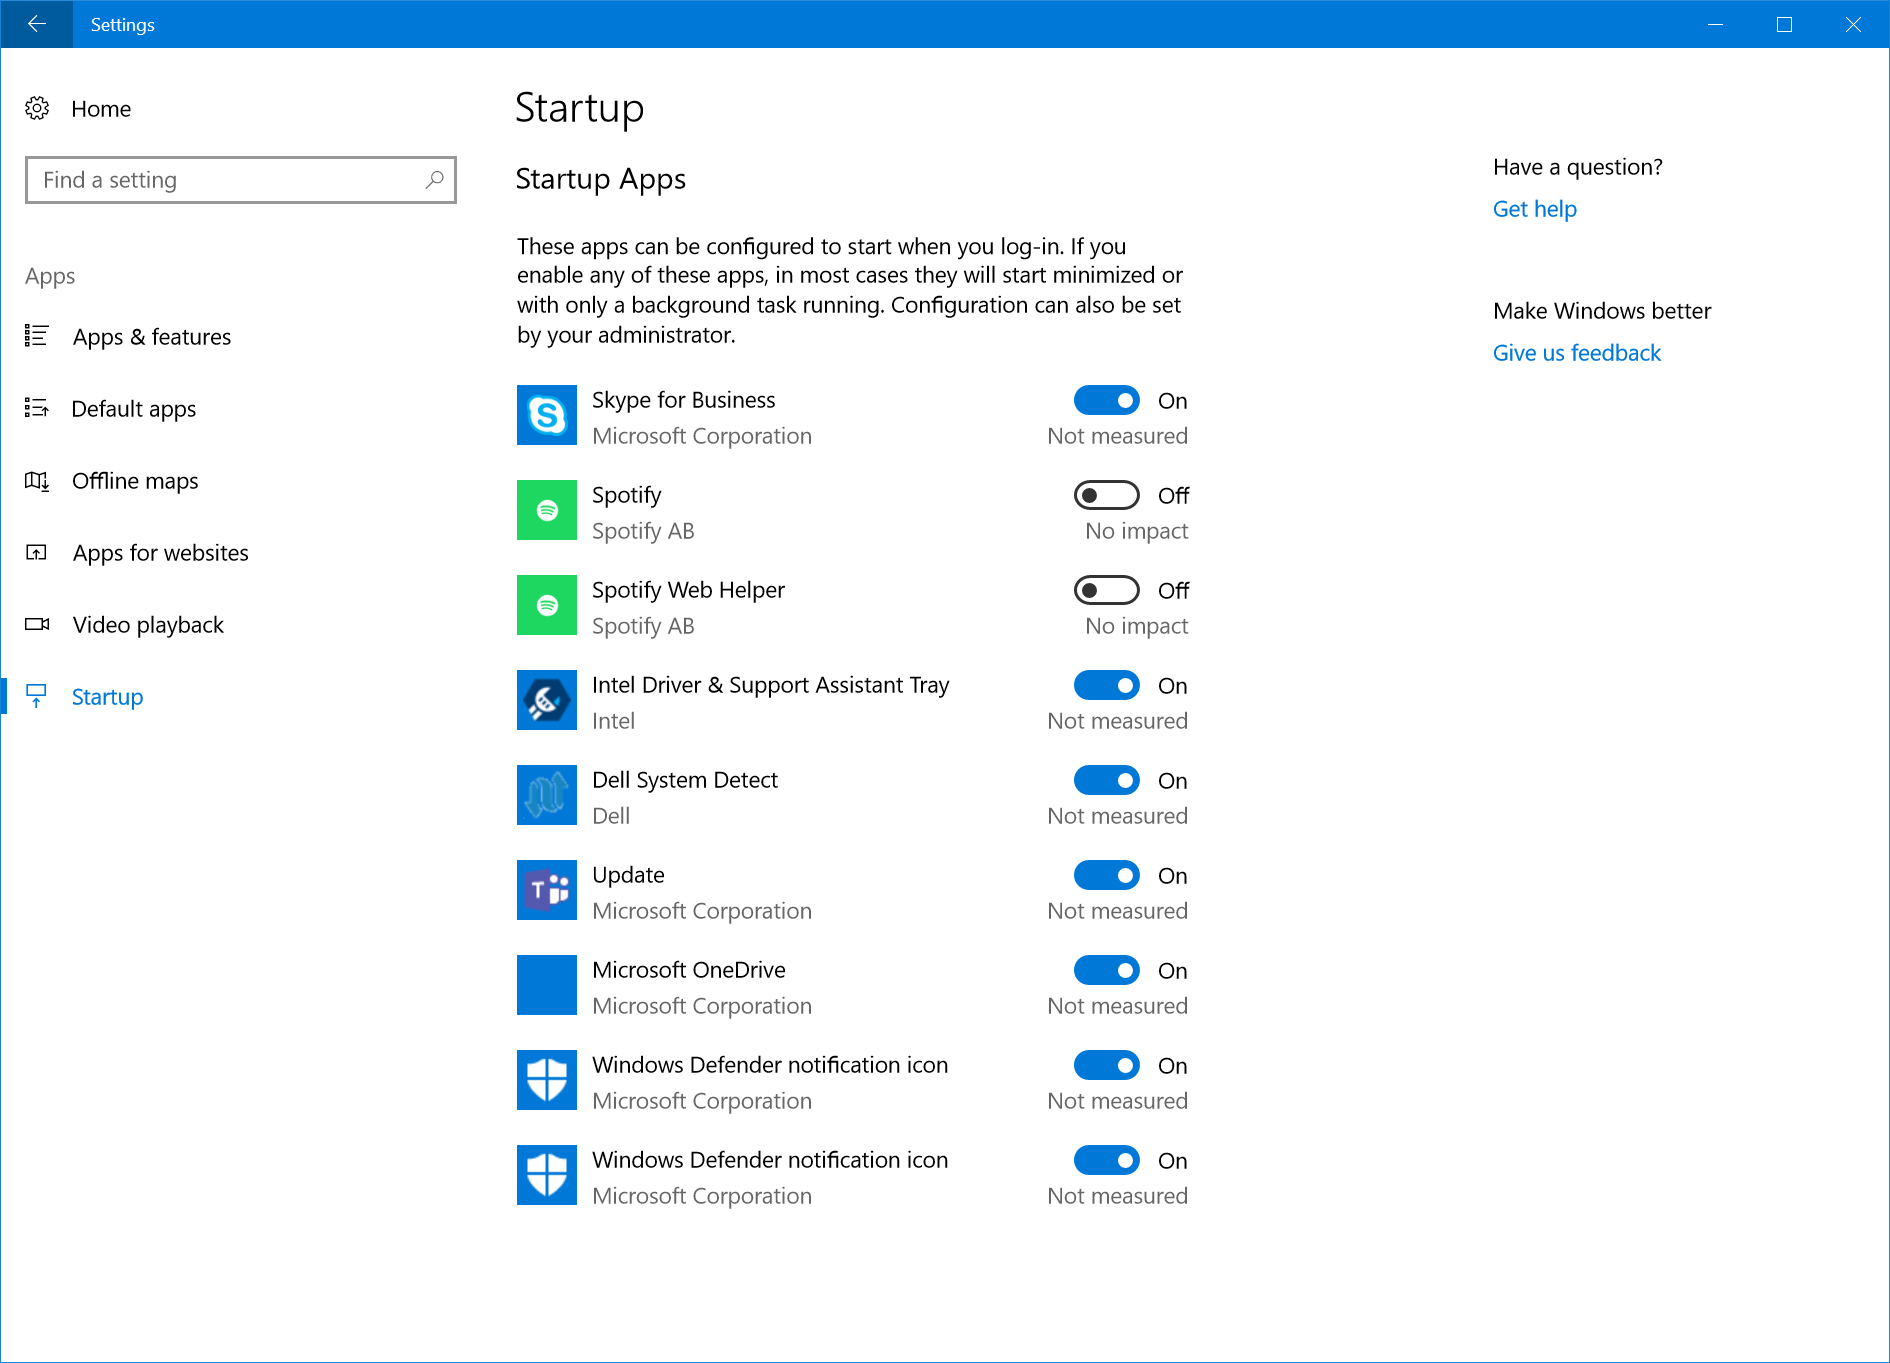 New Startup apps Settings in Windows 10 Build 17017